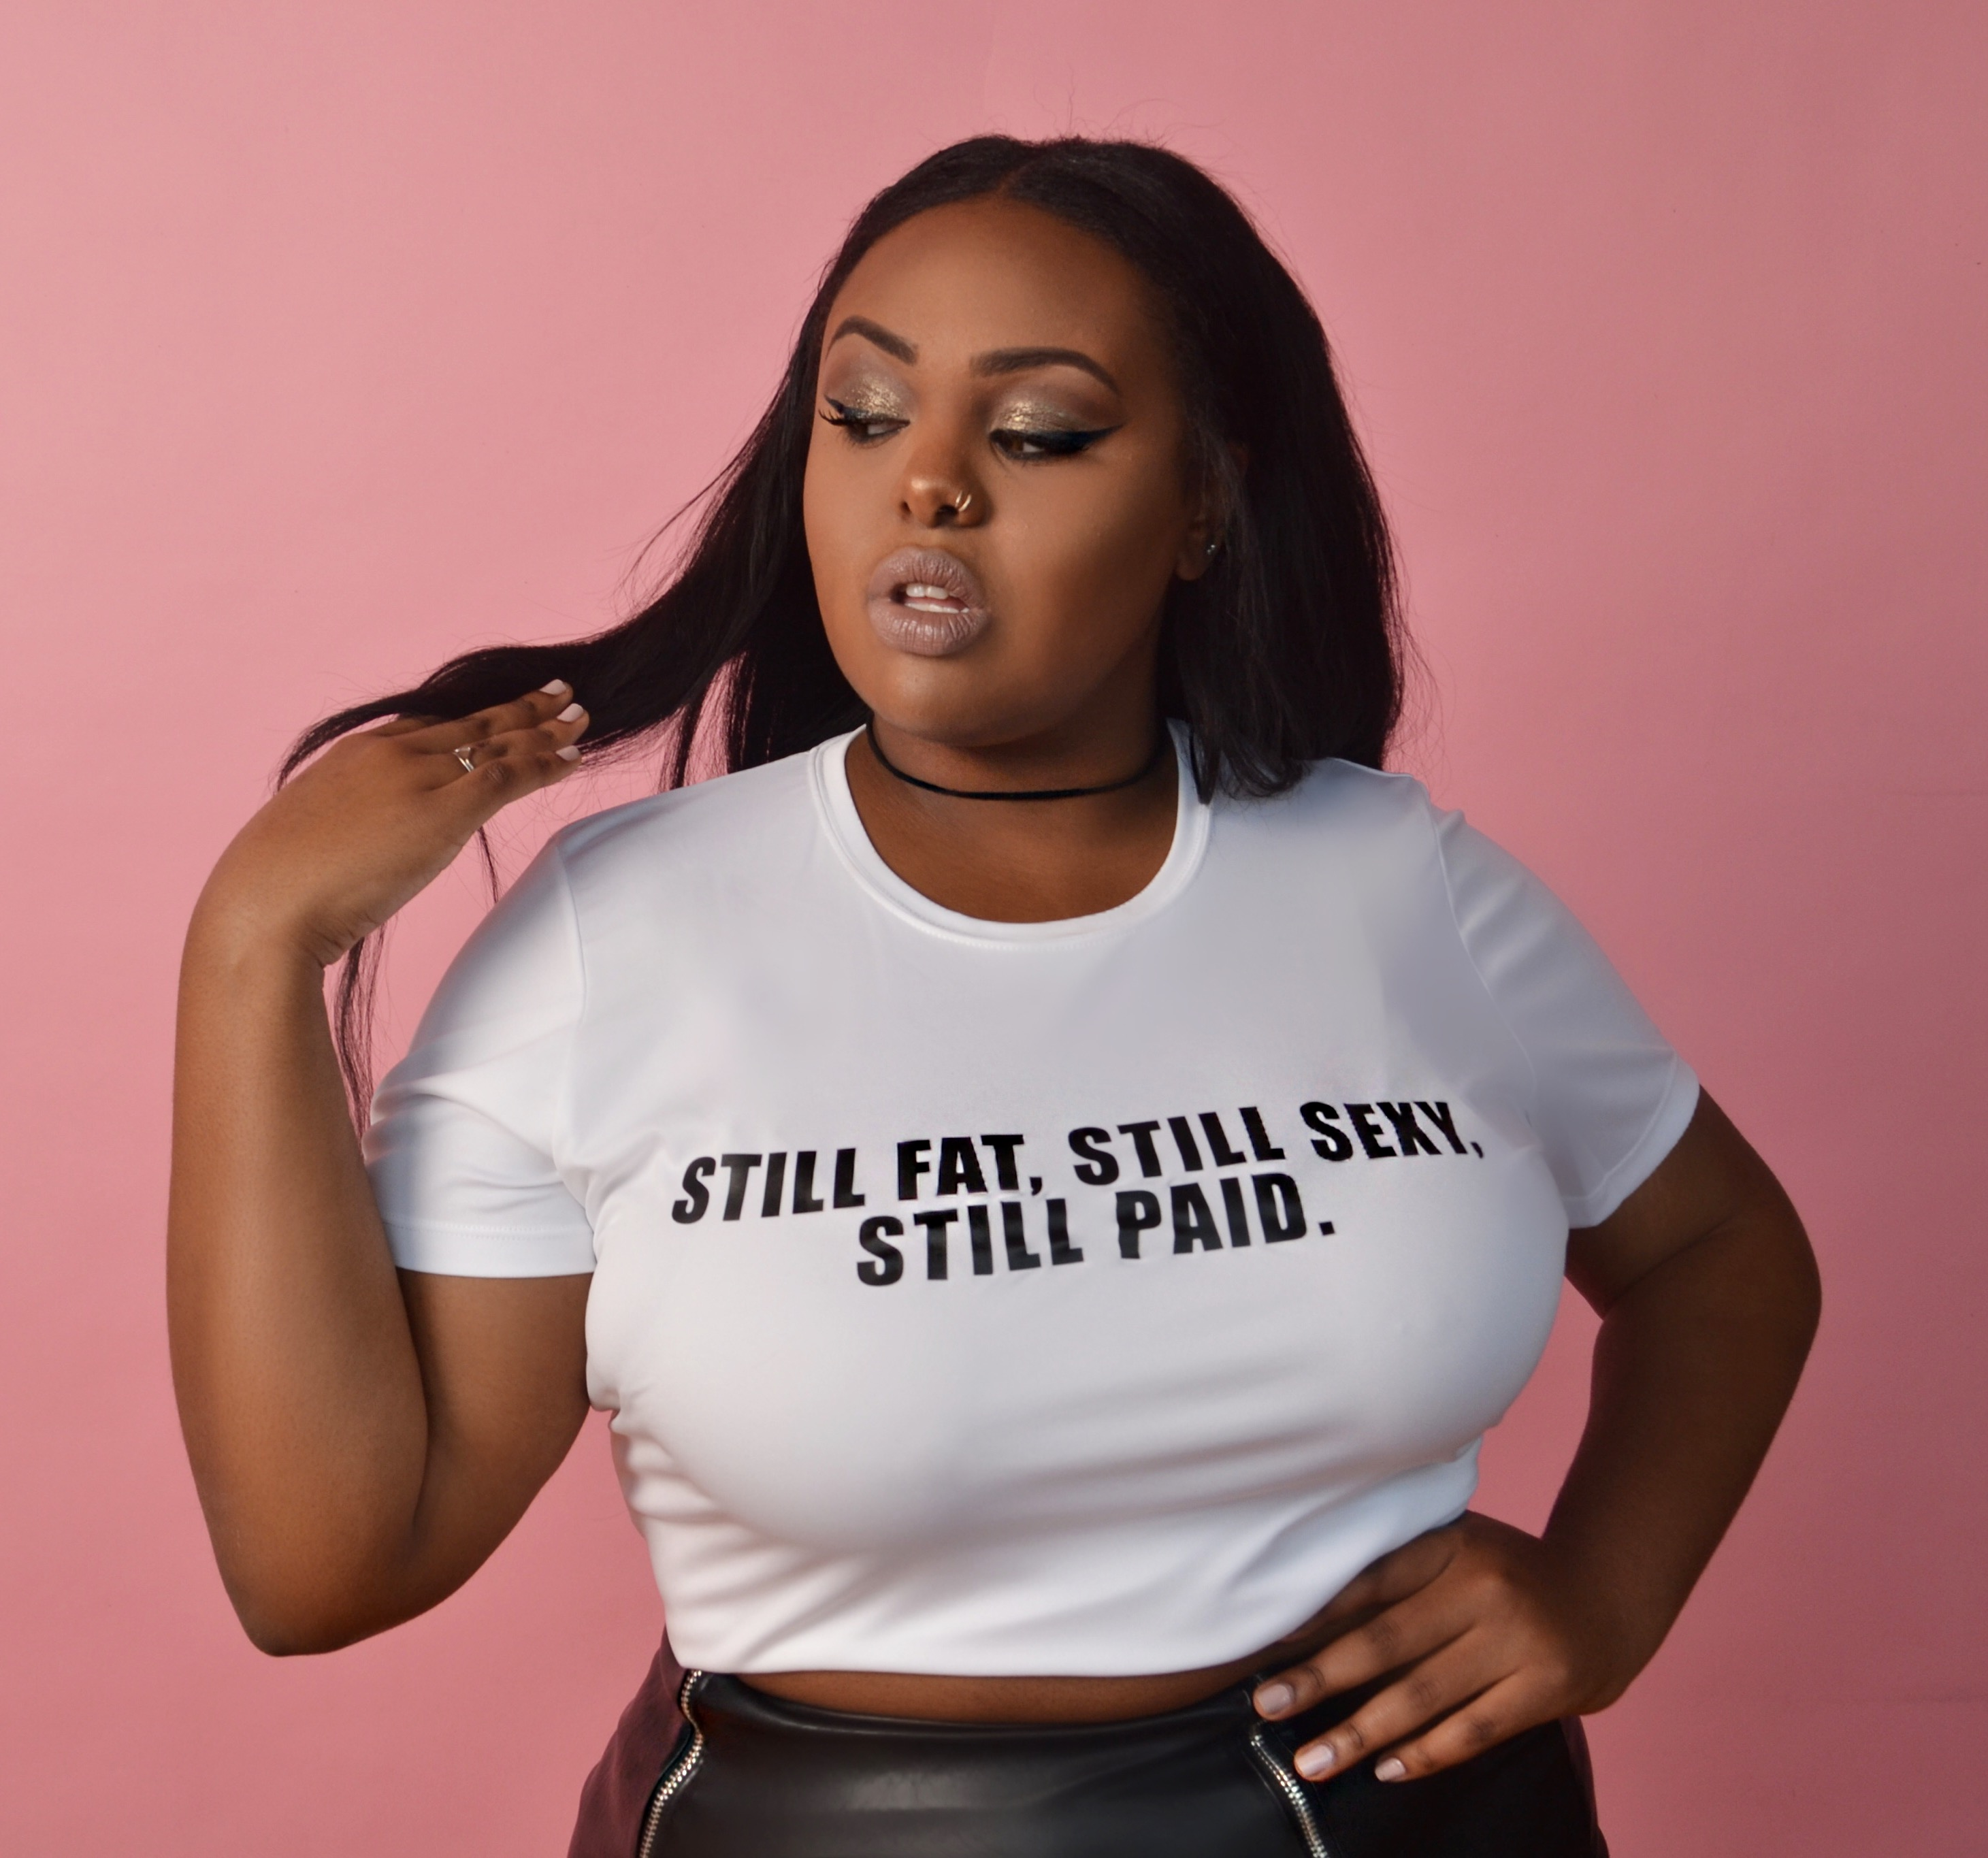 Still Fat Still Sexy Still Paid White Contoured Fit Tee